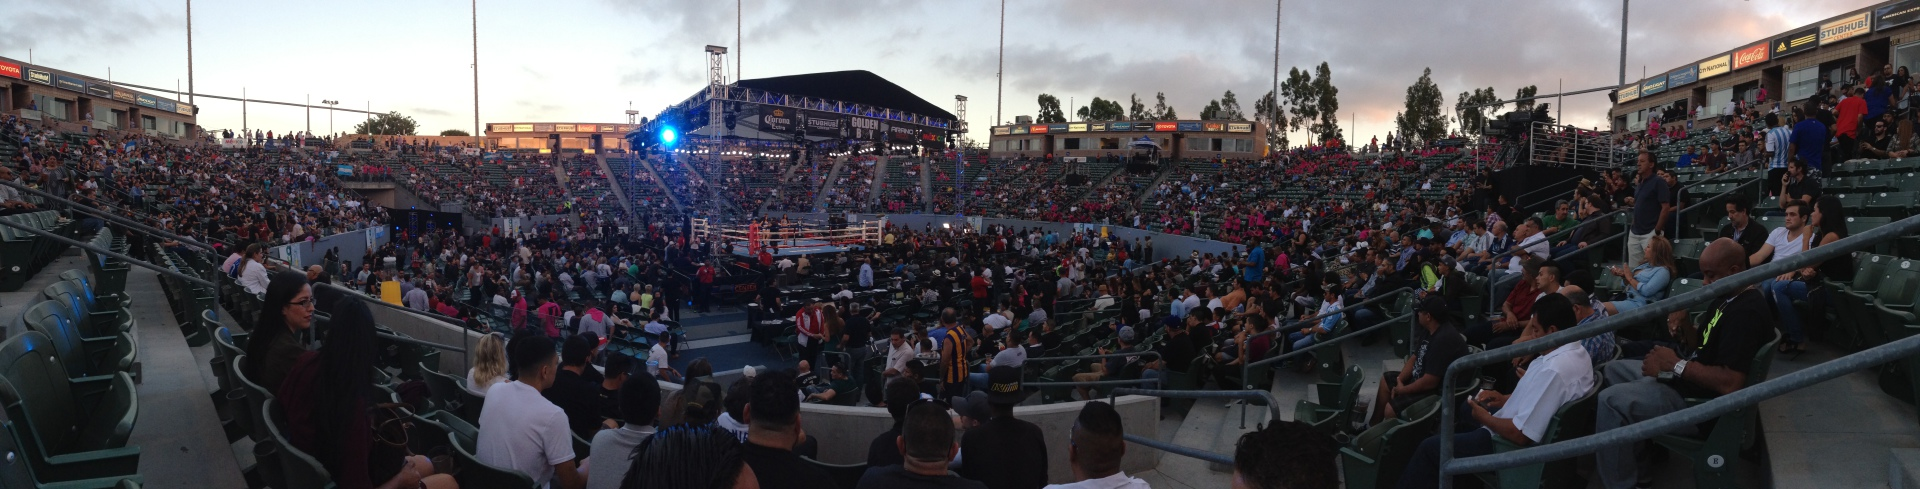 Matthysse vs Postol Stubhub Center, Carson, CA